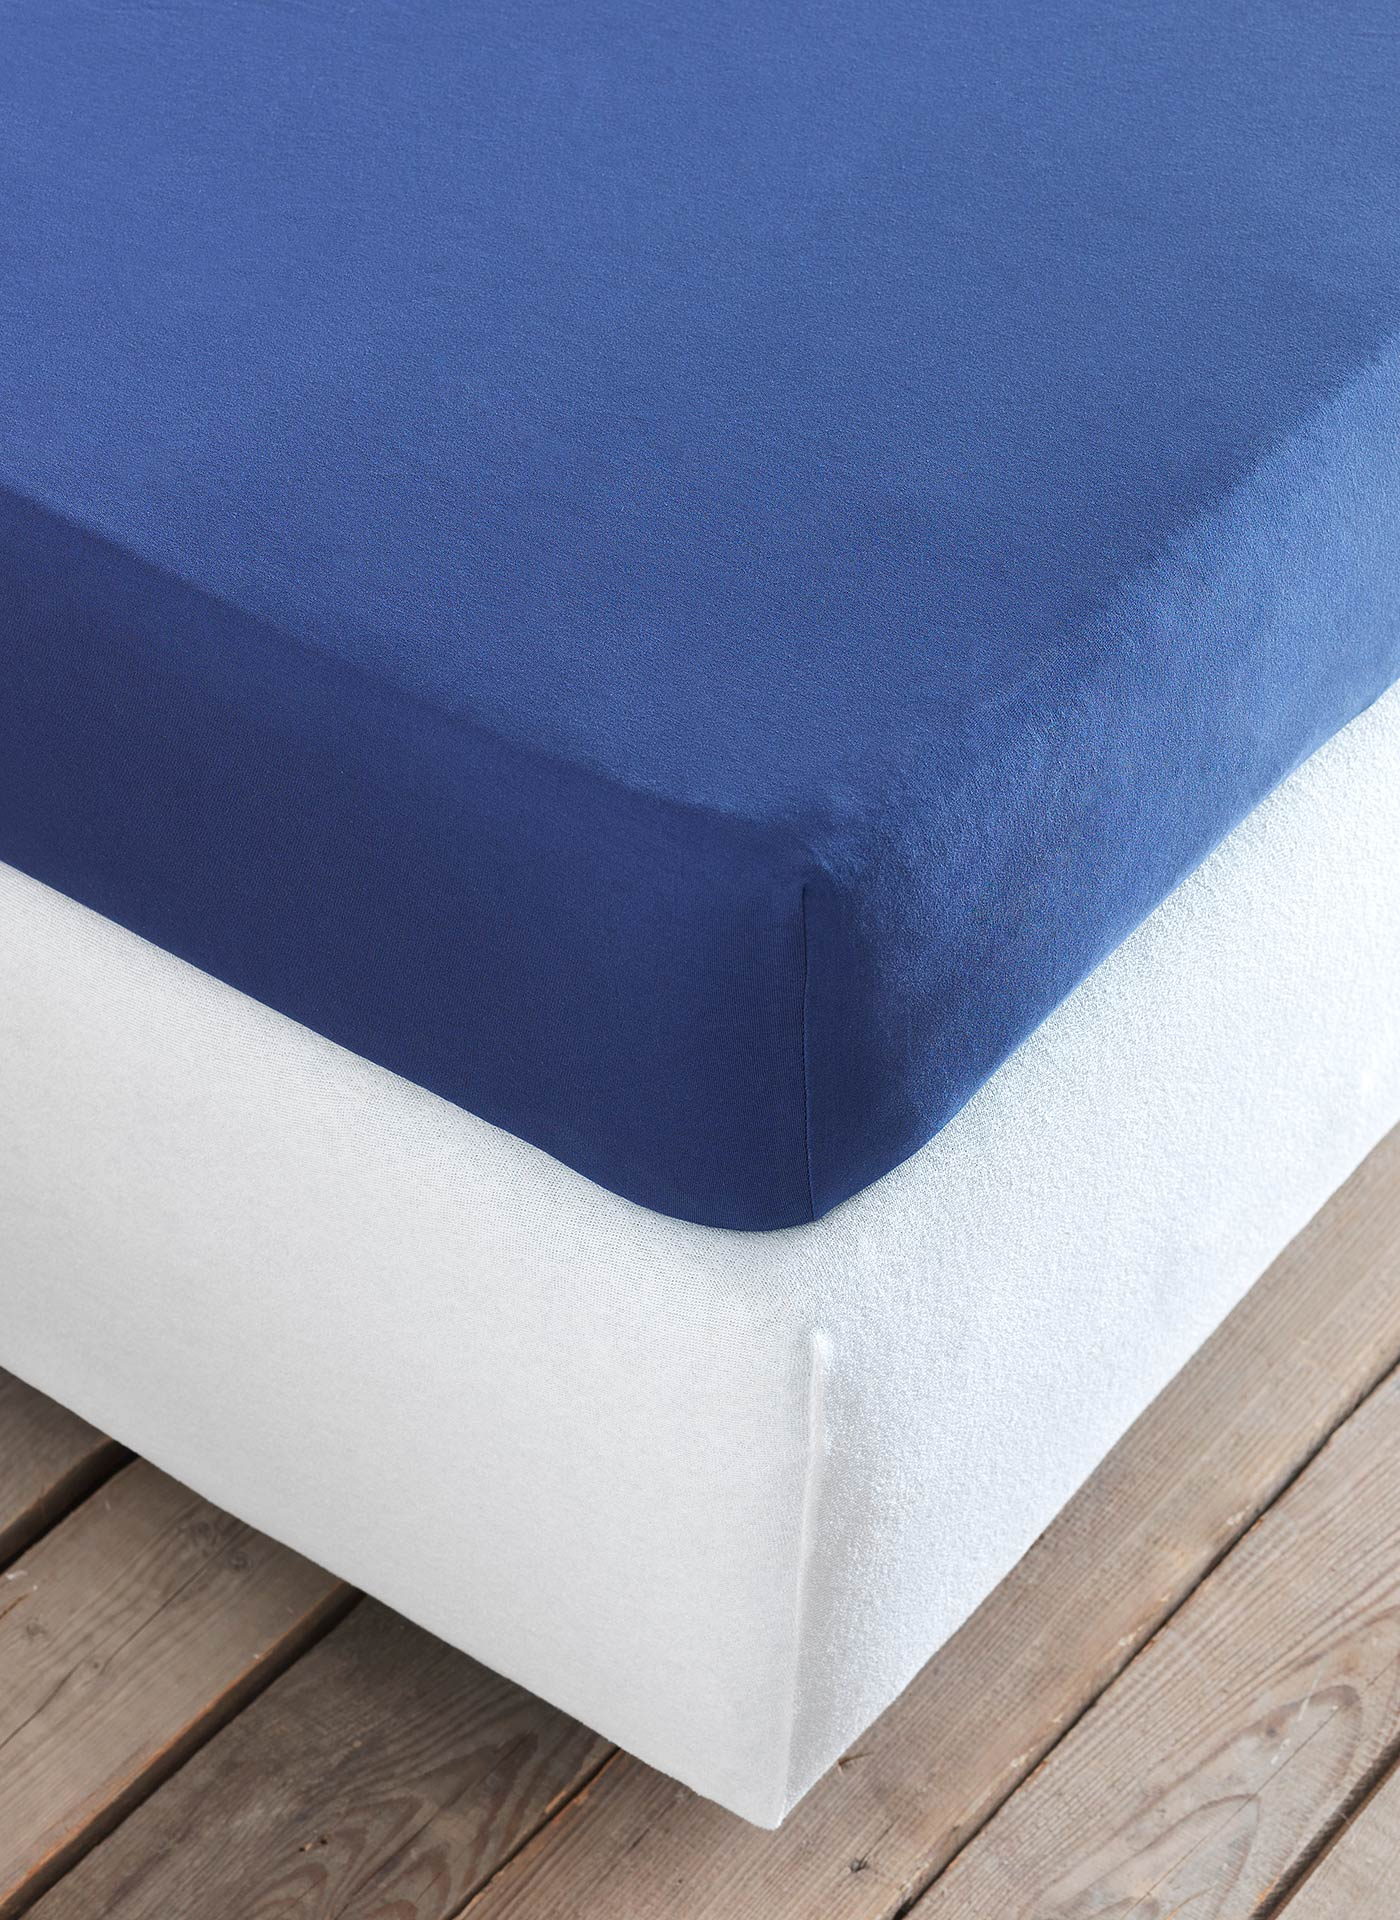 Kımıl Tekstil, fitted sheet